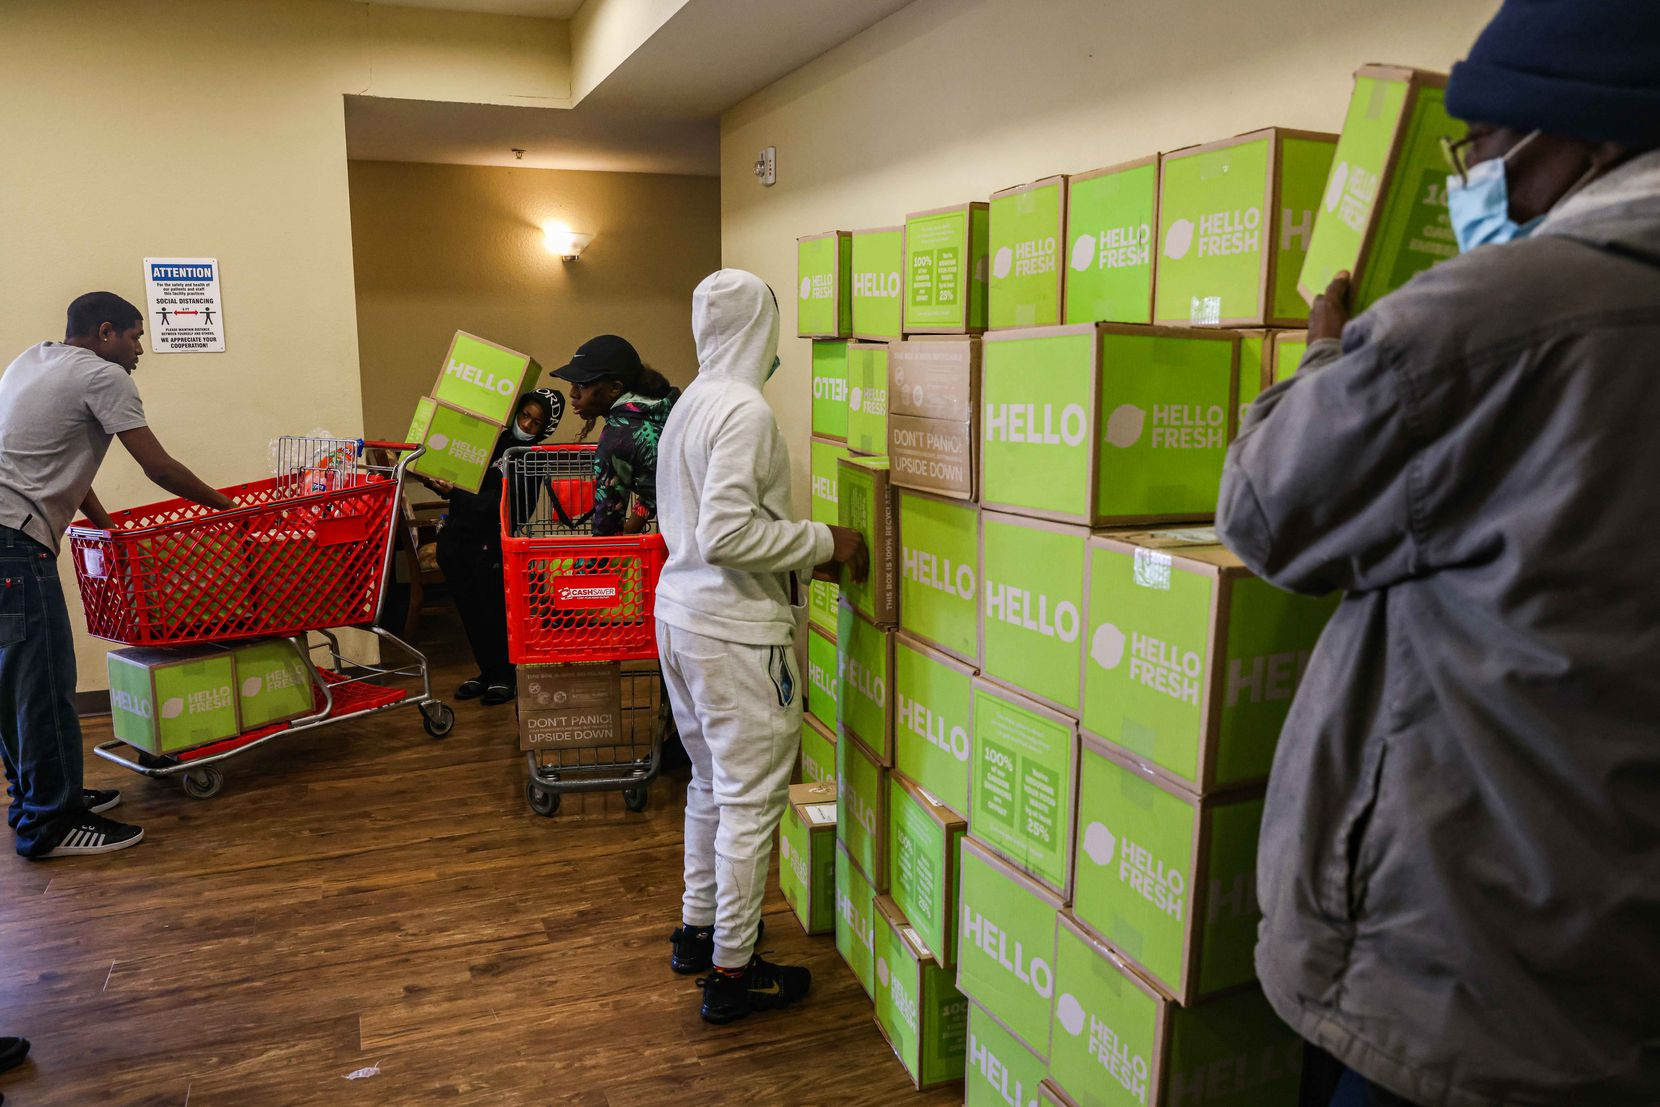 Much-needed food was piling up as volunteers brough boxes of meals into the Lakewest Senior Housing complex in West Dallas on Saturday, Feb. 20, 2021.